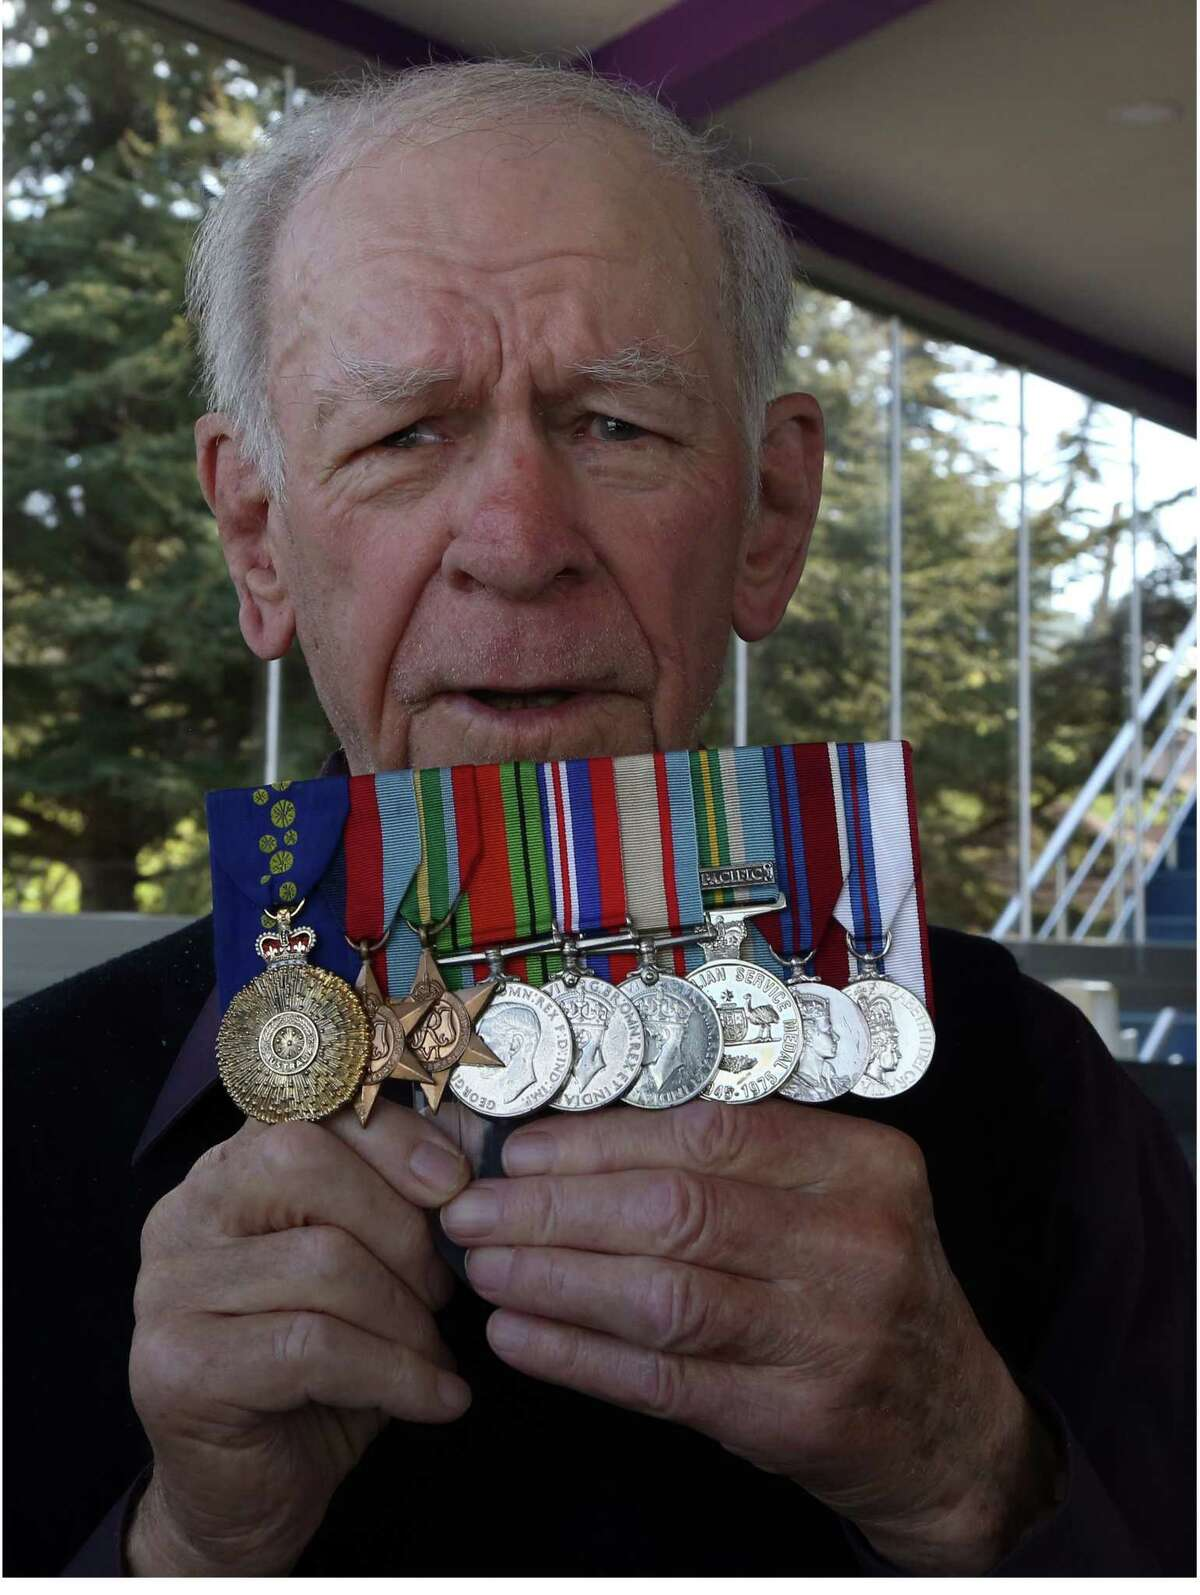 In this image taken Friday, April 24, 2015 Bill Grayden shows his medals as he speaks to The Associated Press in Gallipoli, Turkey, Friday. For the first time at age 95, Grayden has come to Gallipoli, where his father stormed the beach and took a bullet through his lung during the ill-fated British-led World War I invasion. Grayden was among thousands of Australians and New Zealanders who made the pilgrimage from the southern hemisphere to this distant peninsula in Turkey.(AP Photo/Burhan Ozbilici)